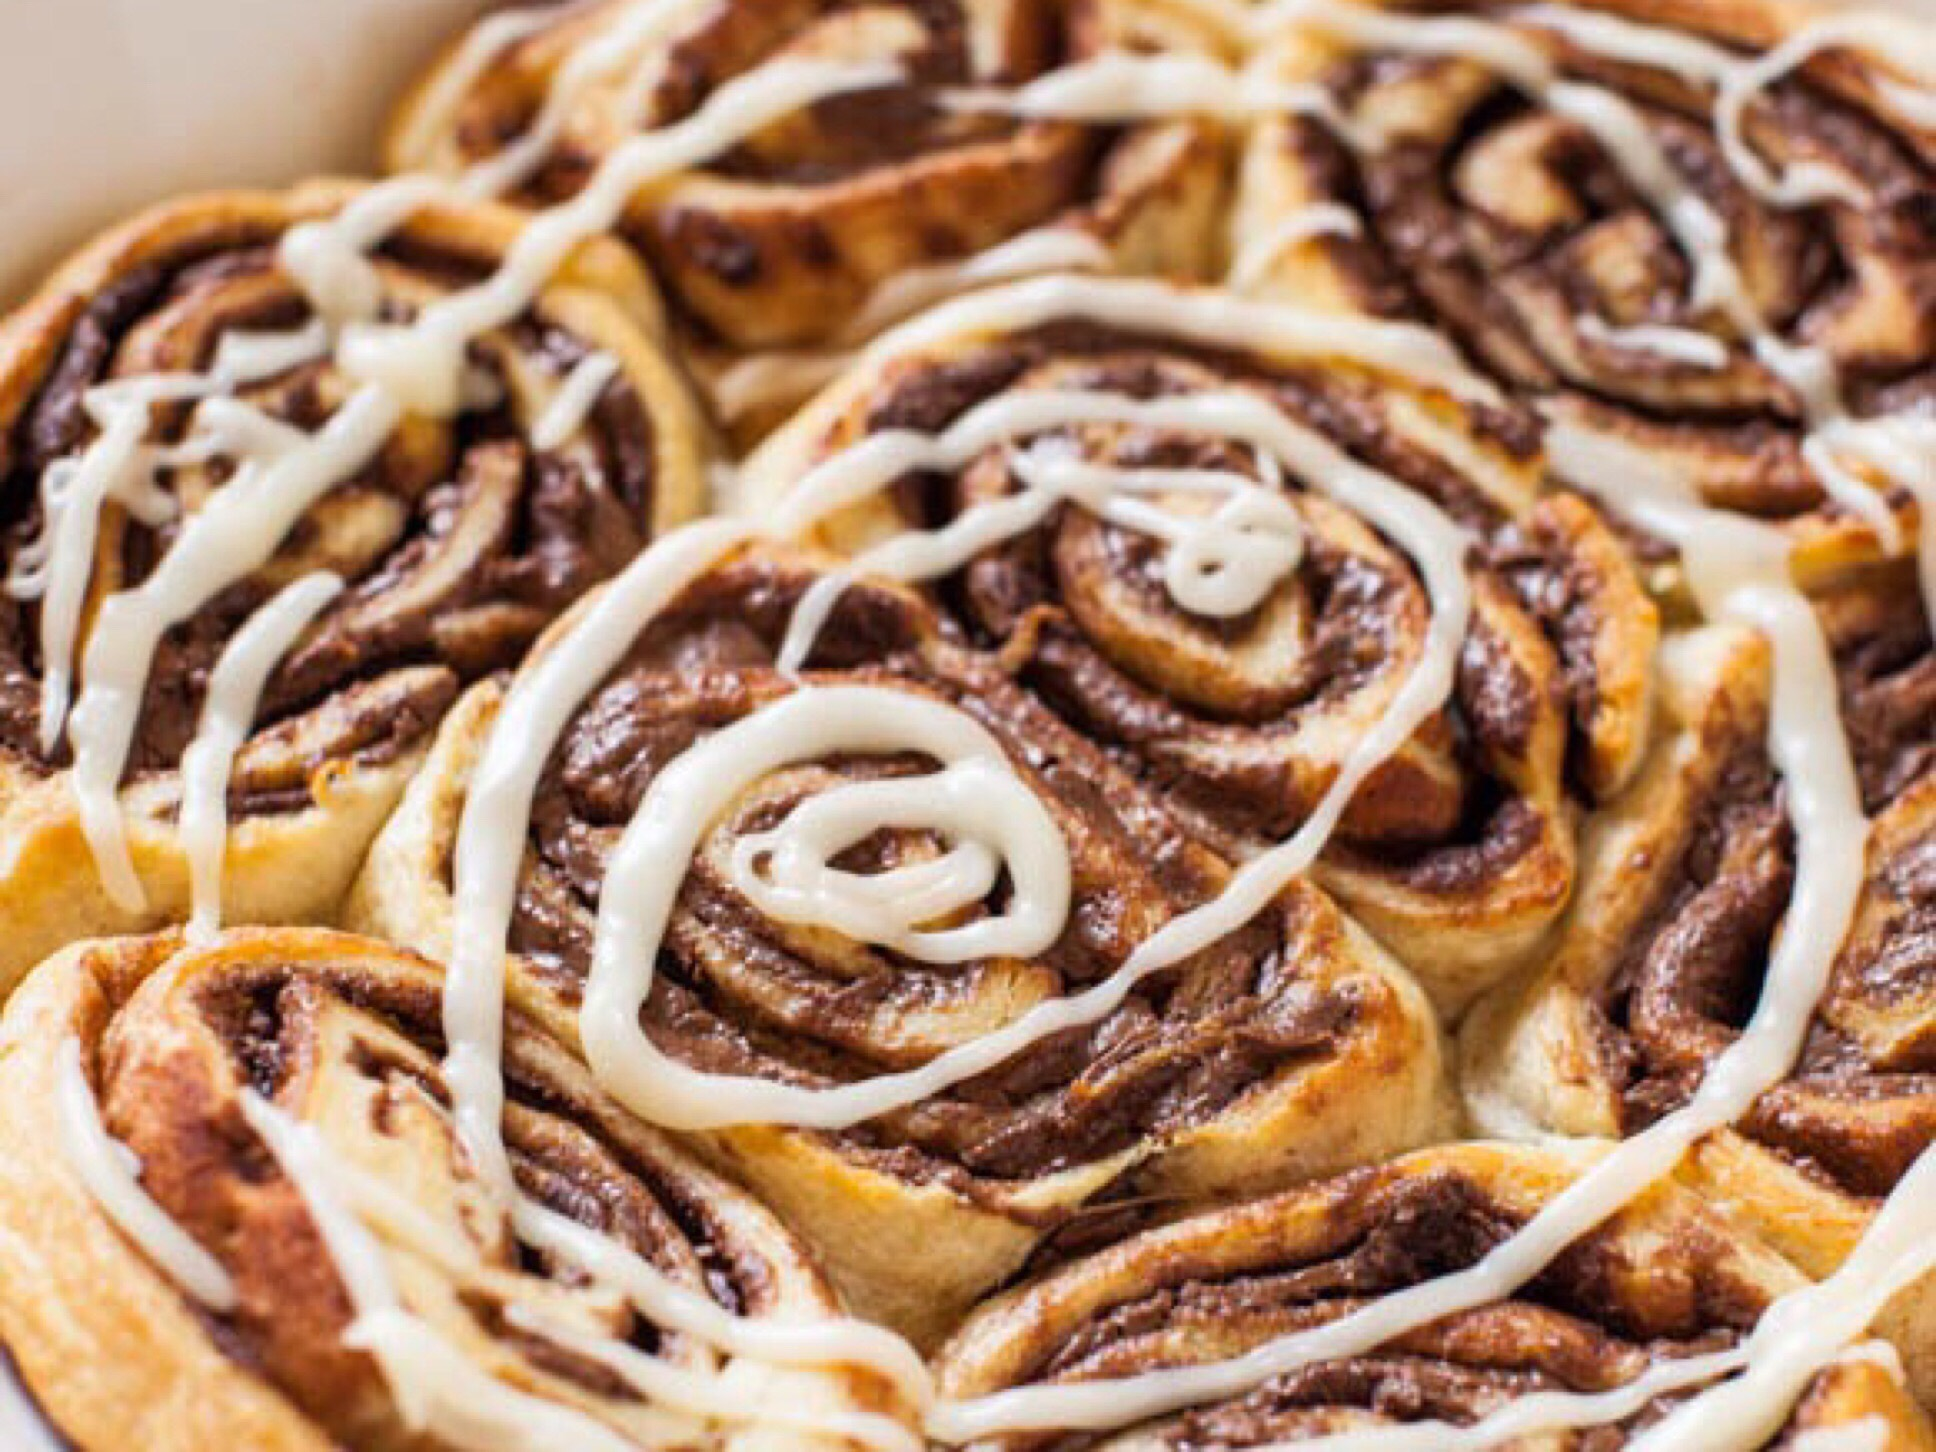 Cinnamon swirl - Breakfast in Bed